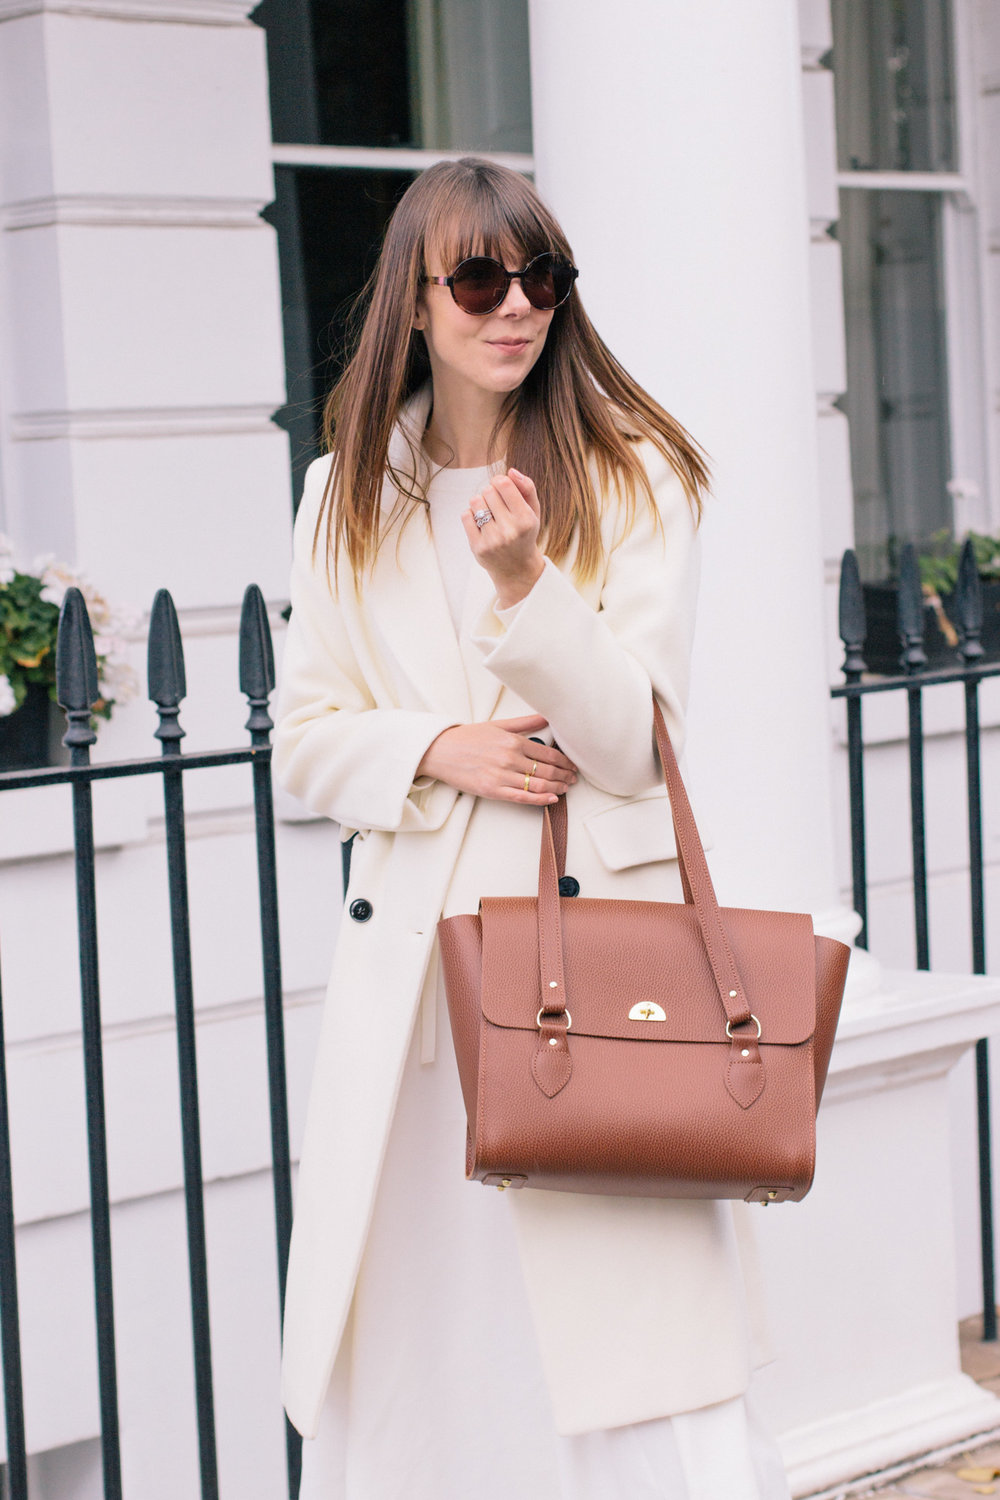 Cambridge Satchel Company Emily Bag Sundays and Somedays-14.jpg